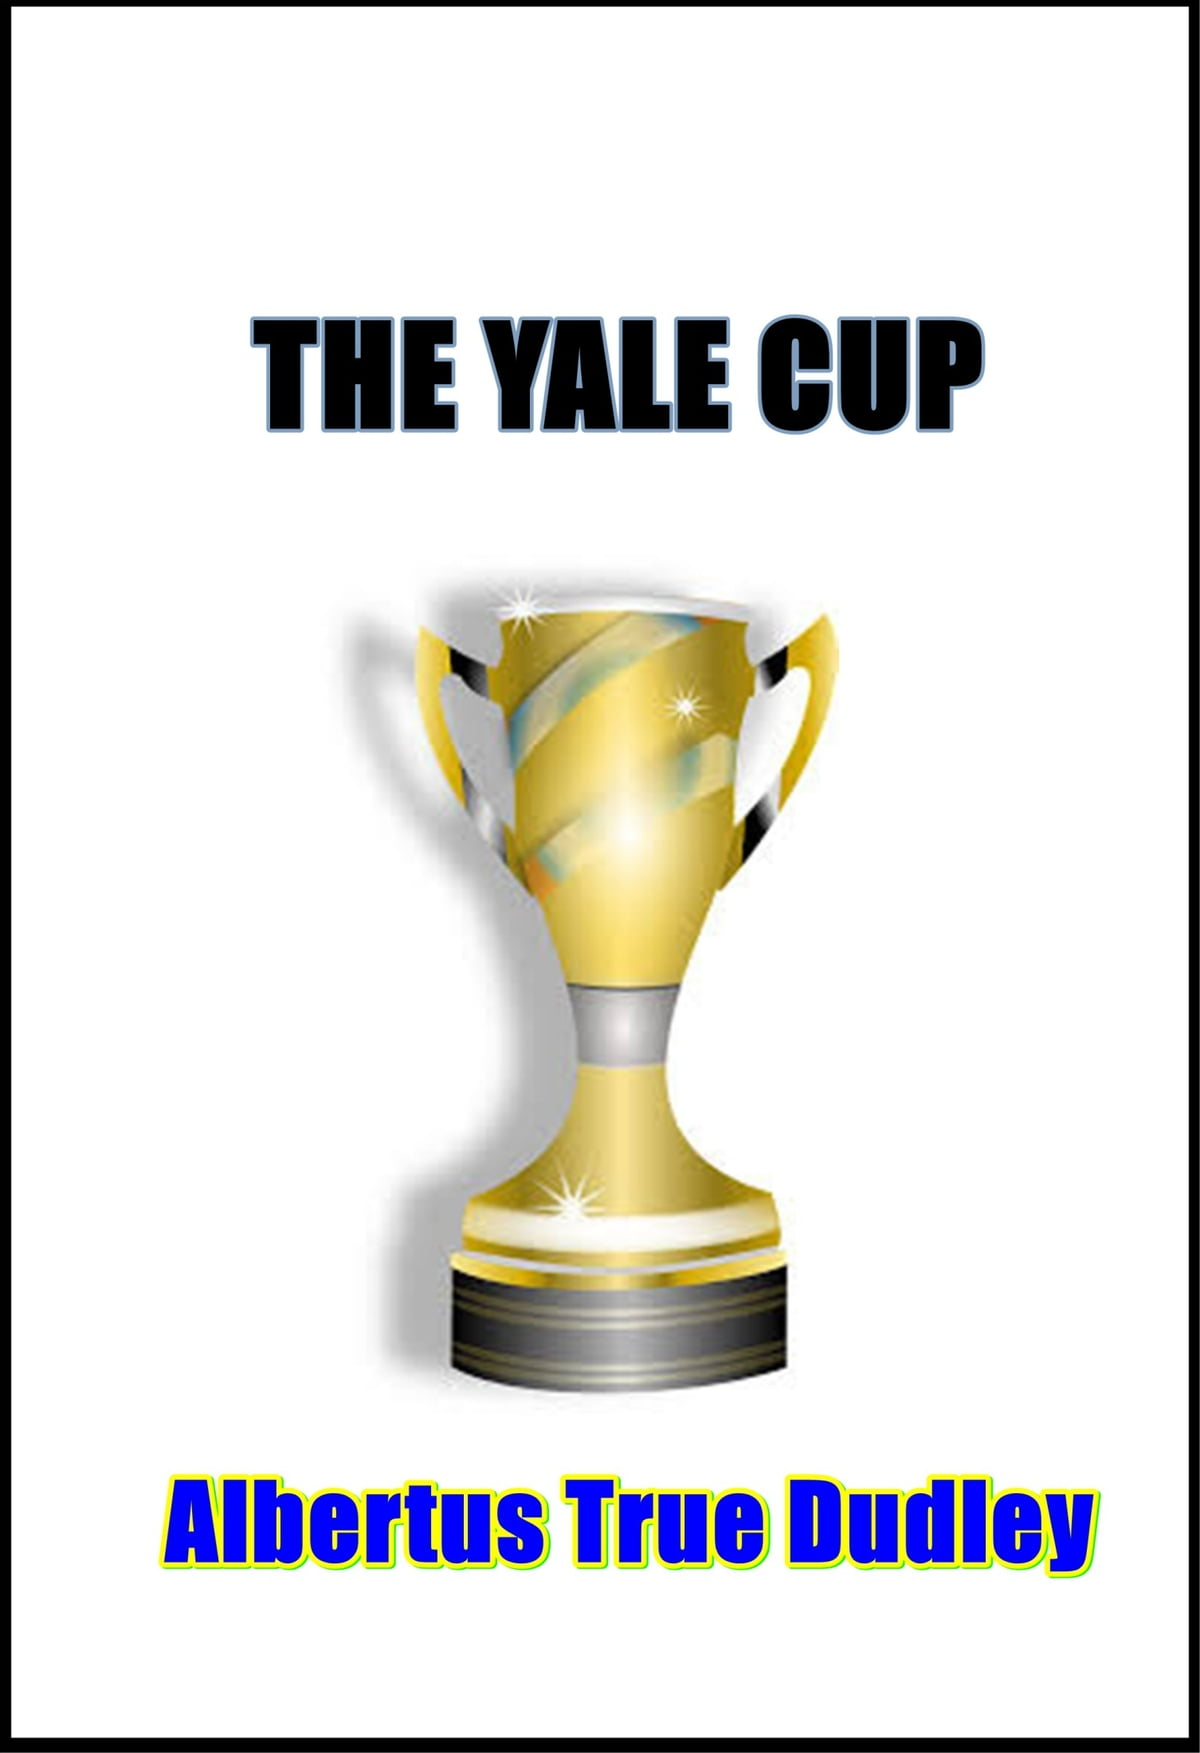 The yale cup ebook by albertus true dudley 1230001742596 the yale cup ebook by albertus true dudley 1230001742596 rakuten kobo fandeluxe Ebook collections